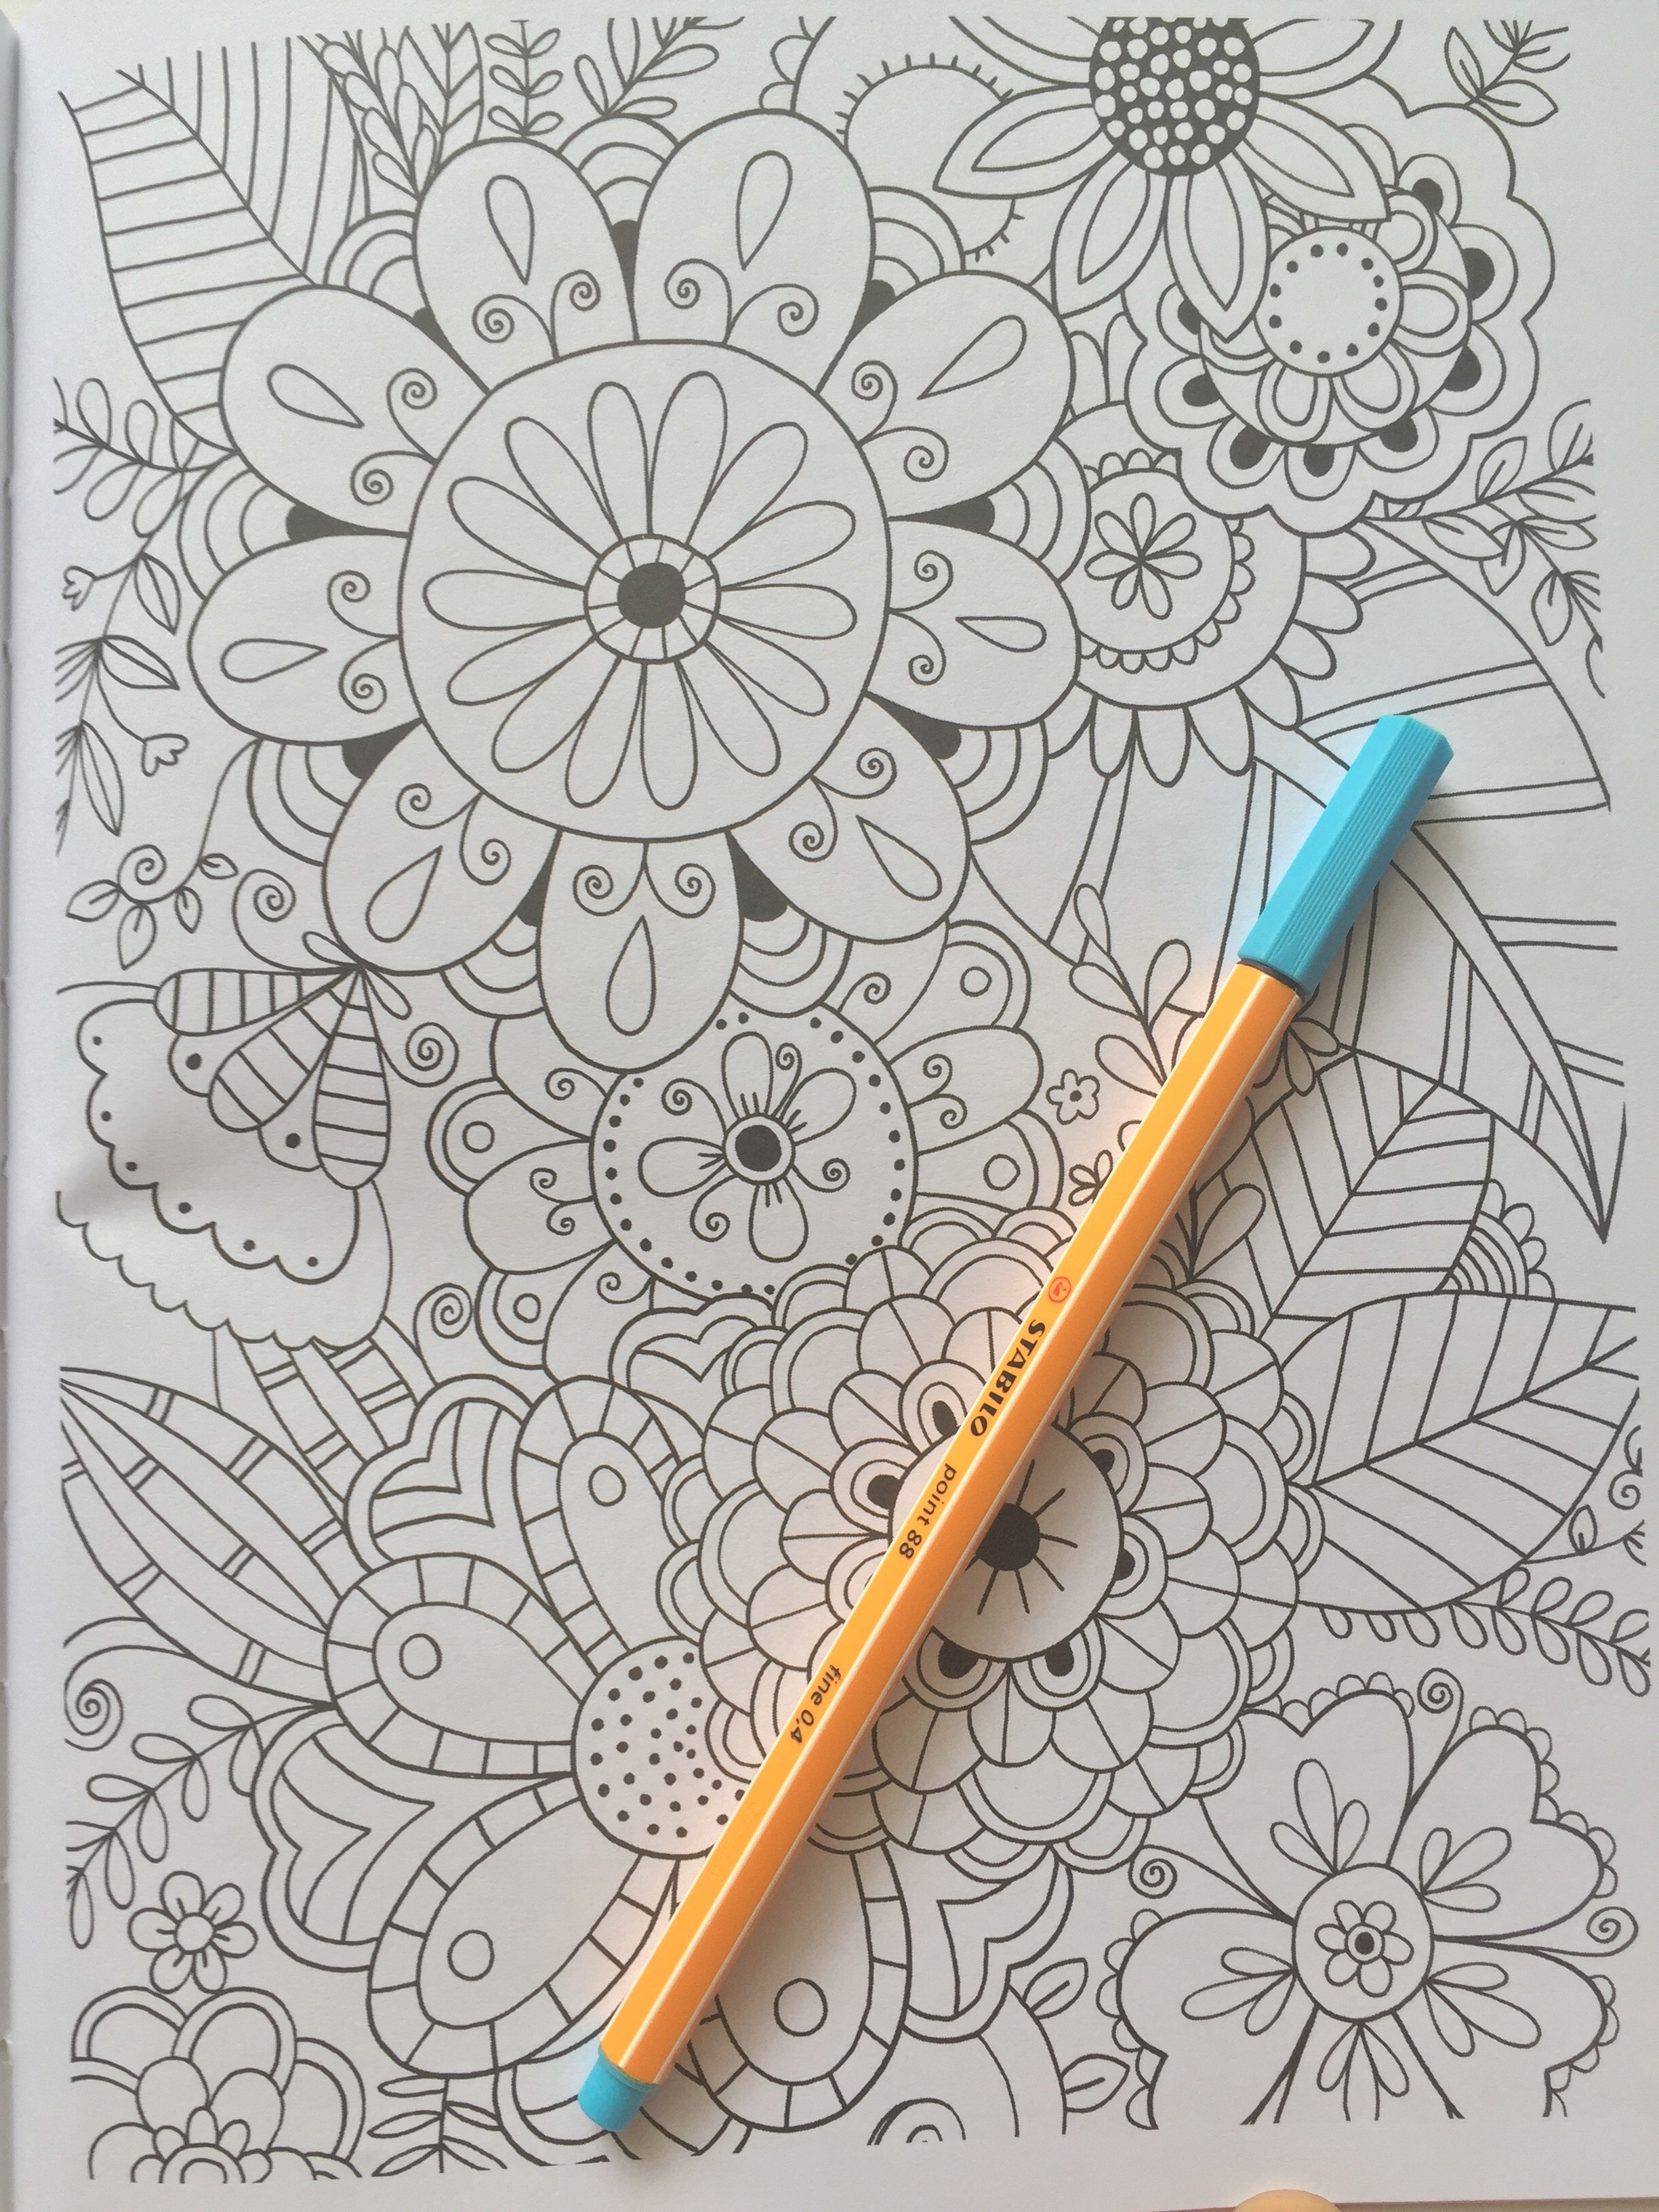 Art therapy coloring book michael omara - Adult Colouring Mindfulness Art Therapy Relaxed Focused Book Review Colouring